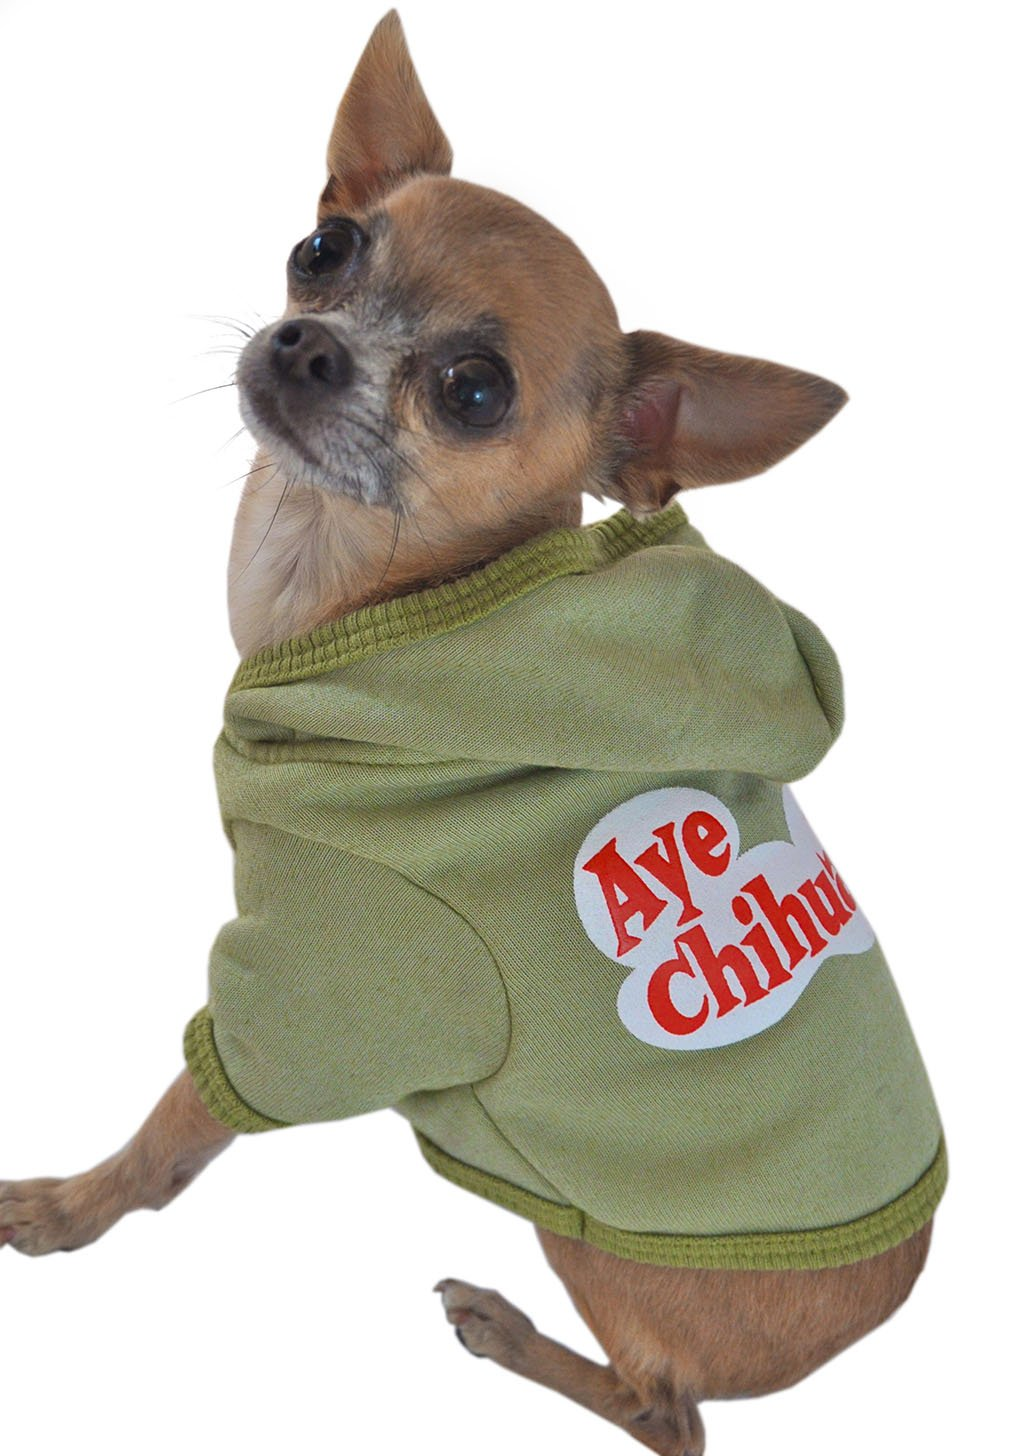 Ruff Ruff and Meow Dog Hoodie, Aye Chihuahua, Green, Small by Ruff Ruff and Meow